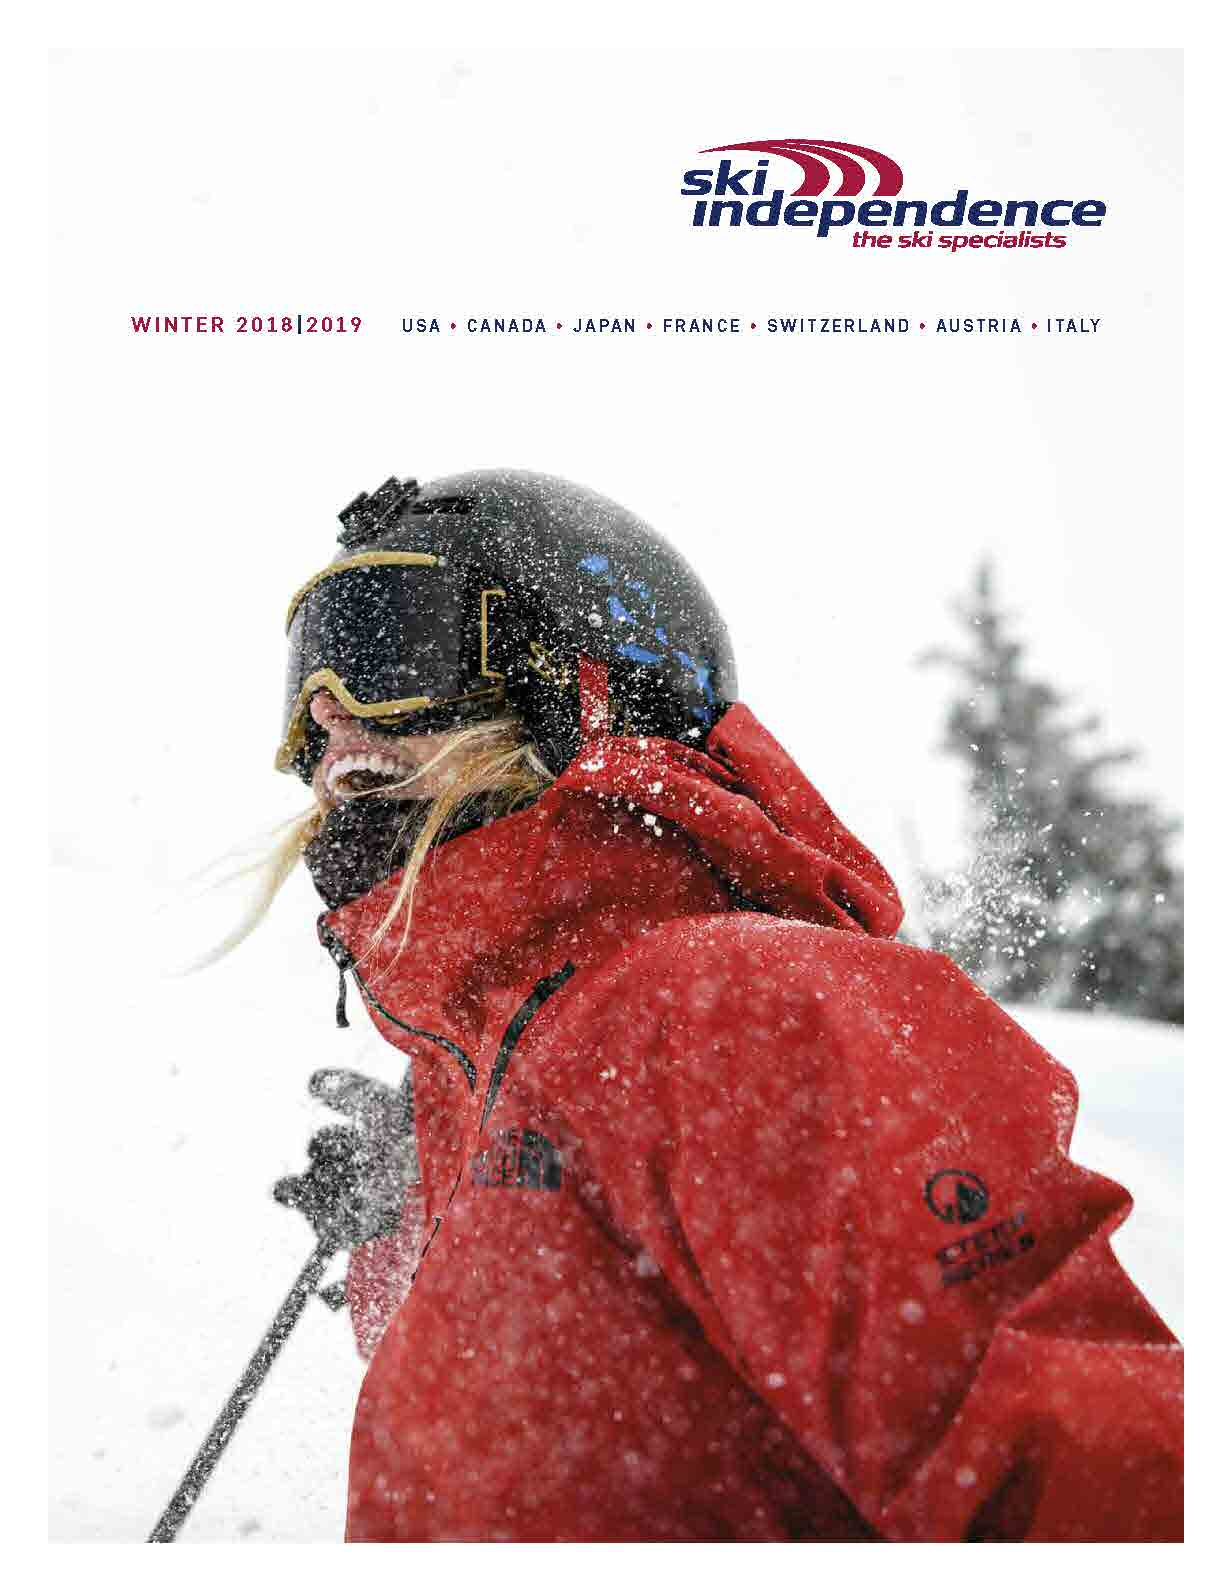 brochure request ski independence